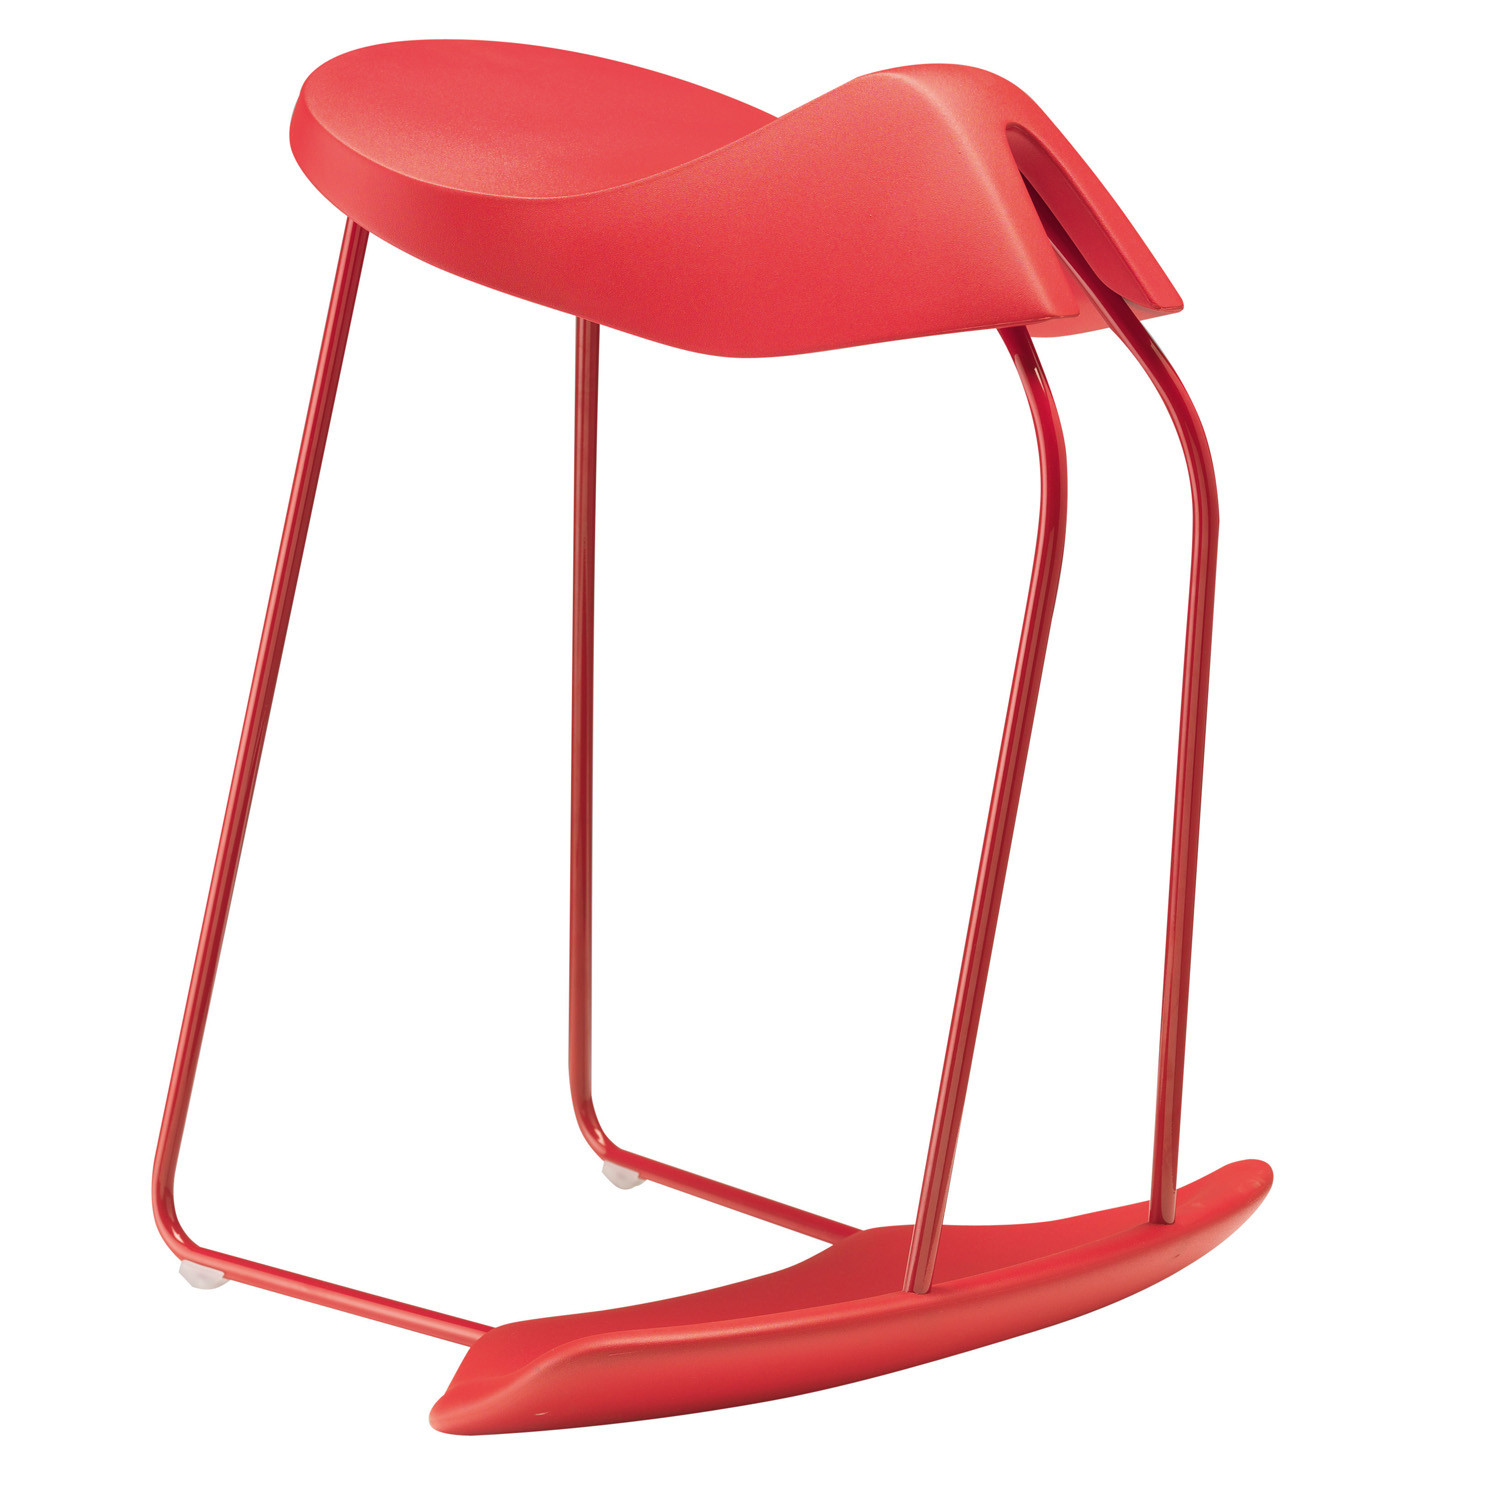 Dinamica Rocking Chair aids to adapt a correct posture